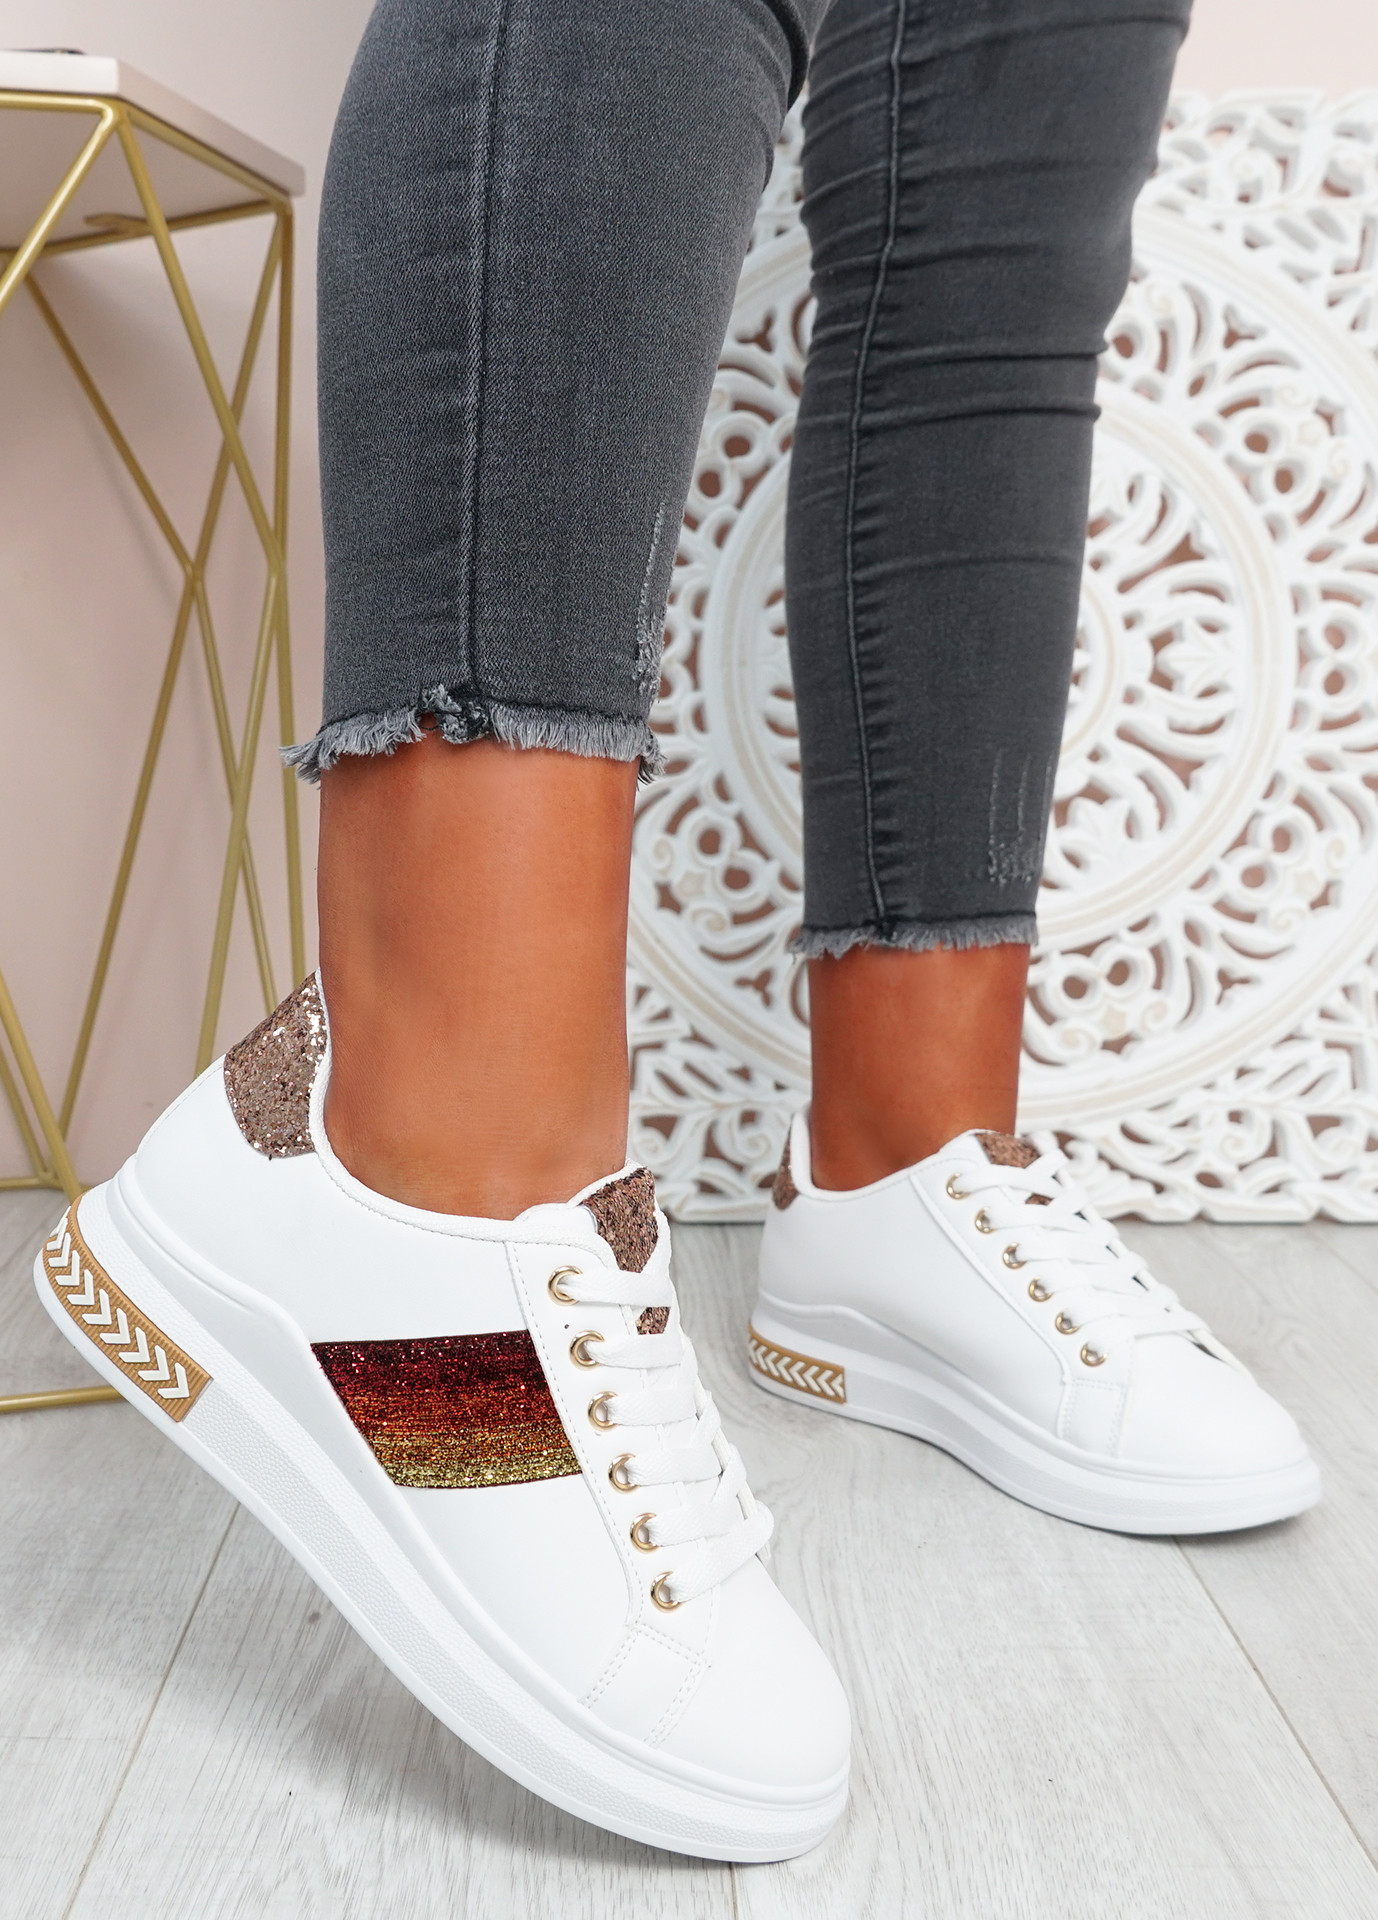 Mollie Champagne Glitter Sneakers